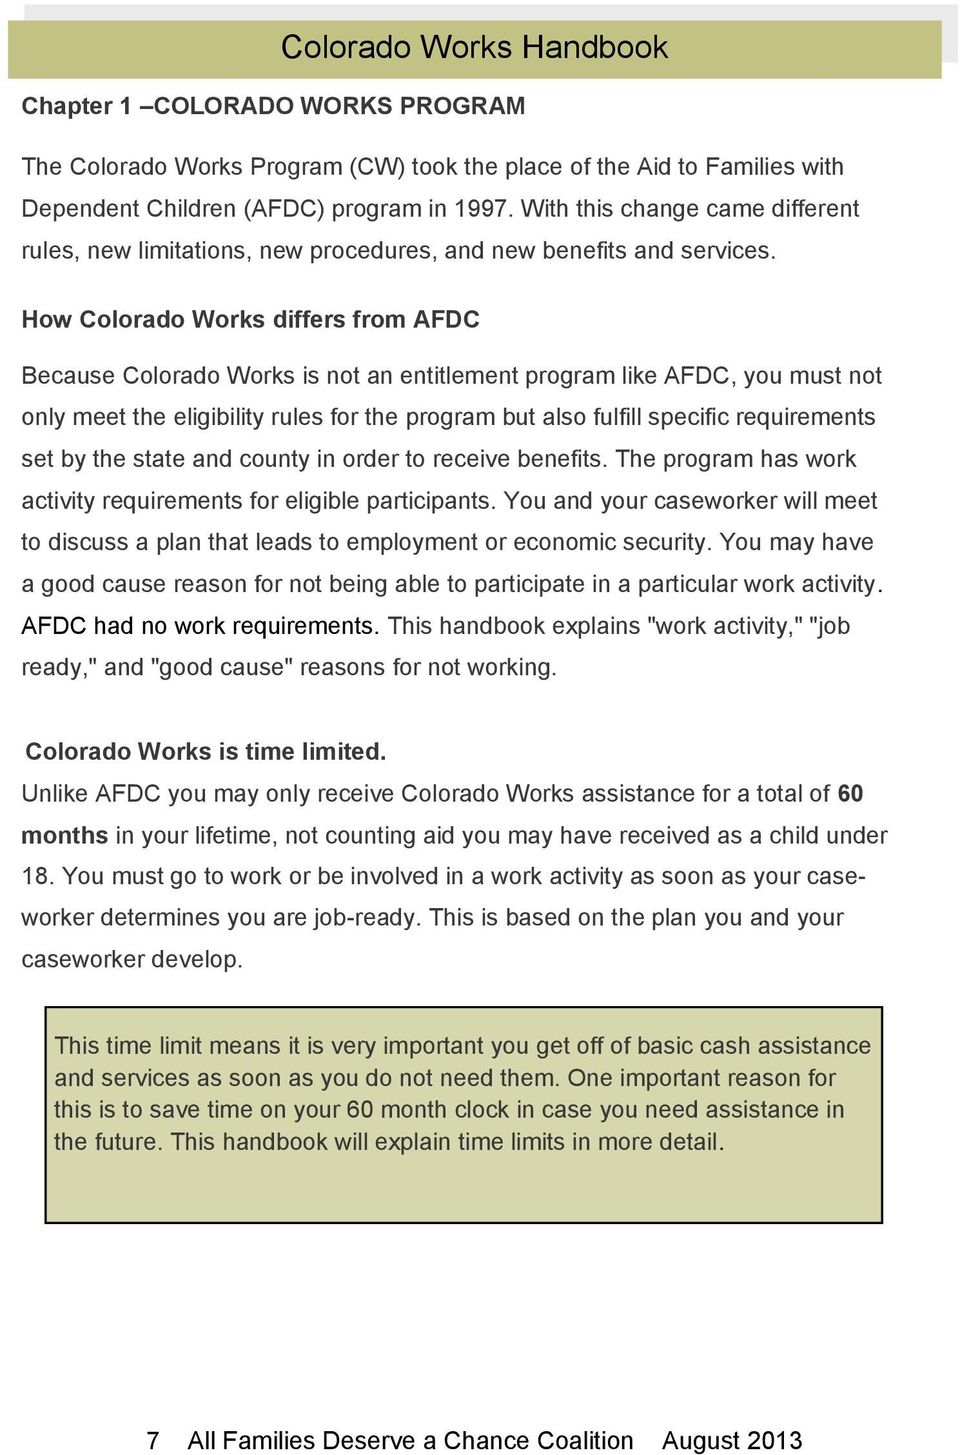 How Colorado Works differs from AFDC Because Colorado Works is not an entitlement program like AFDC, you must not only meet the eligibility rules for the program but also fulfill specific